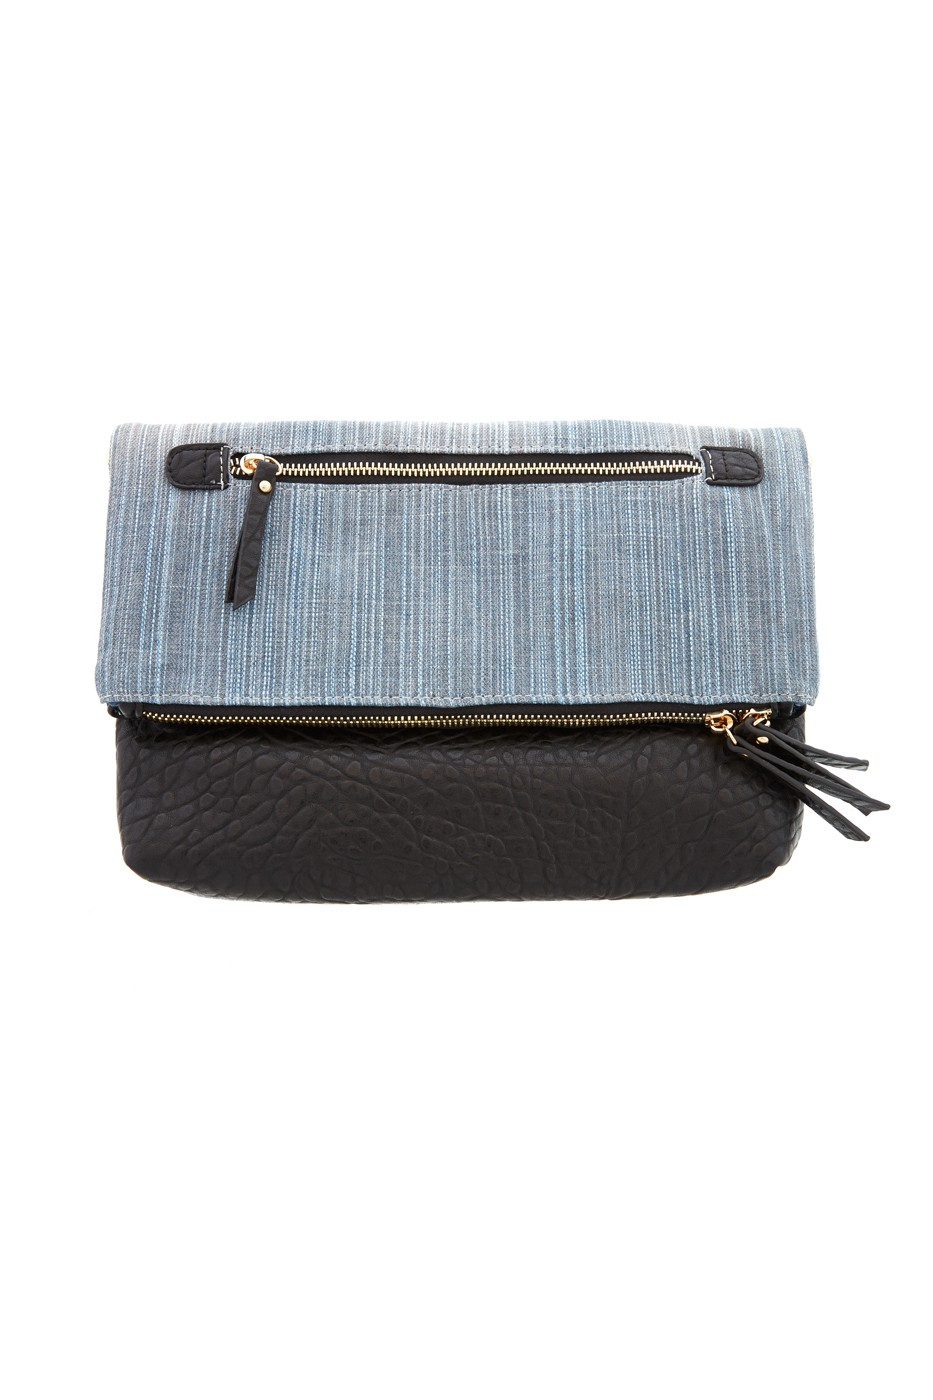 Denim and faux leather accessories create casual yet attractive look!